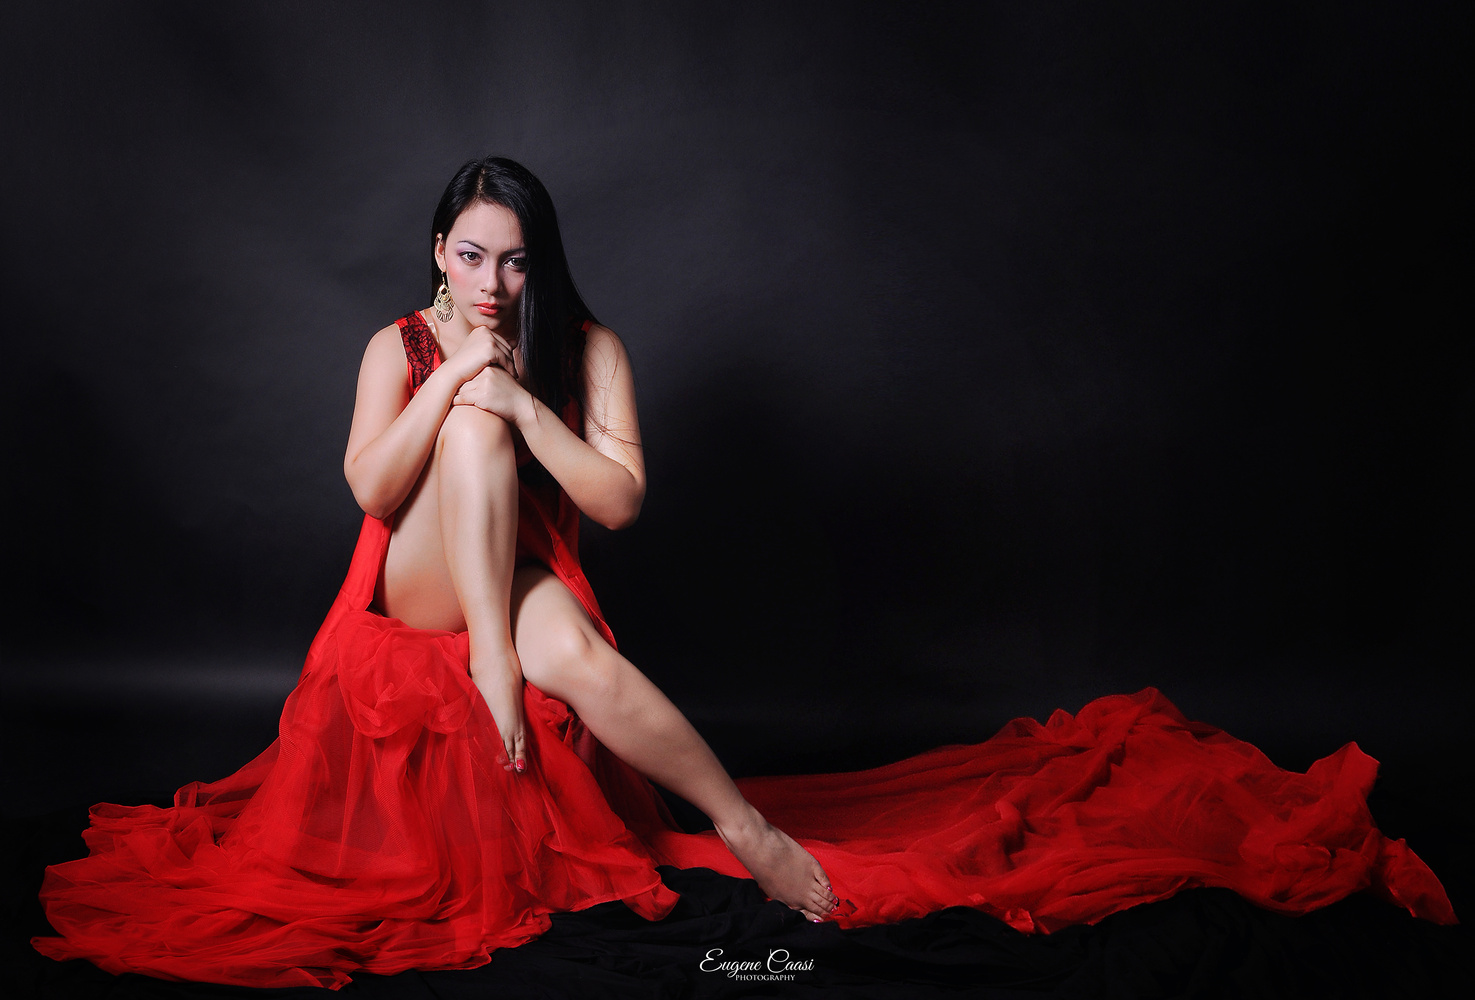 THE LADY IN RED by EUGENE CAASI